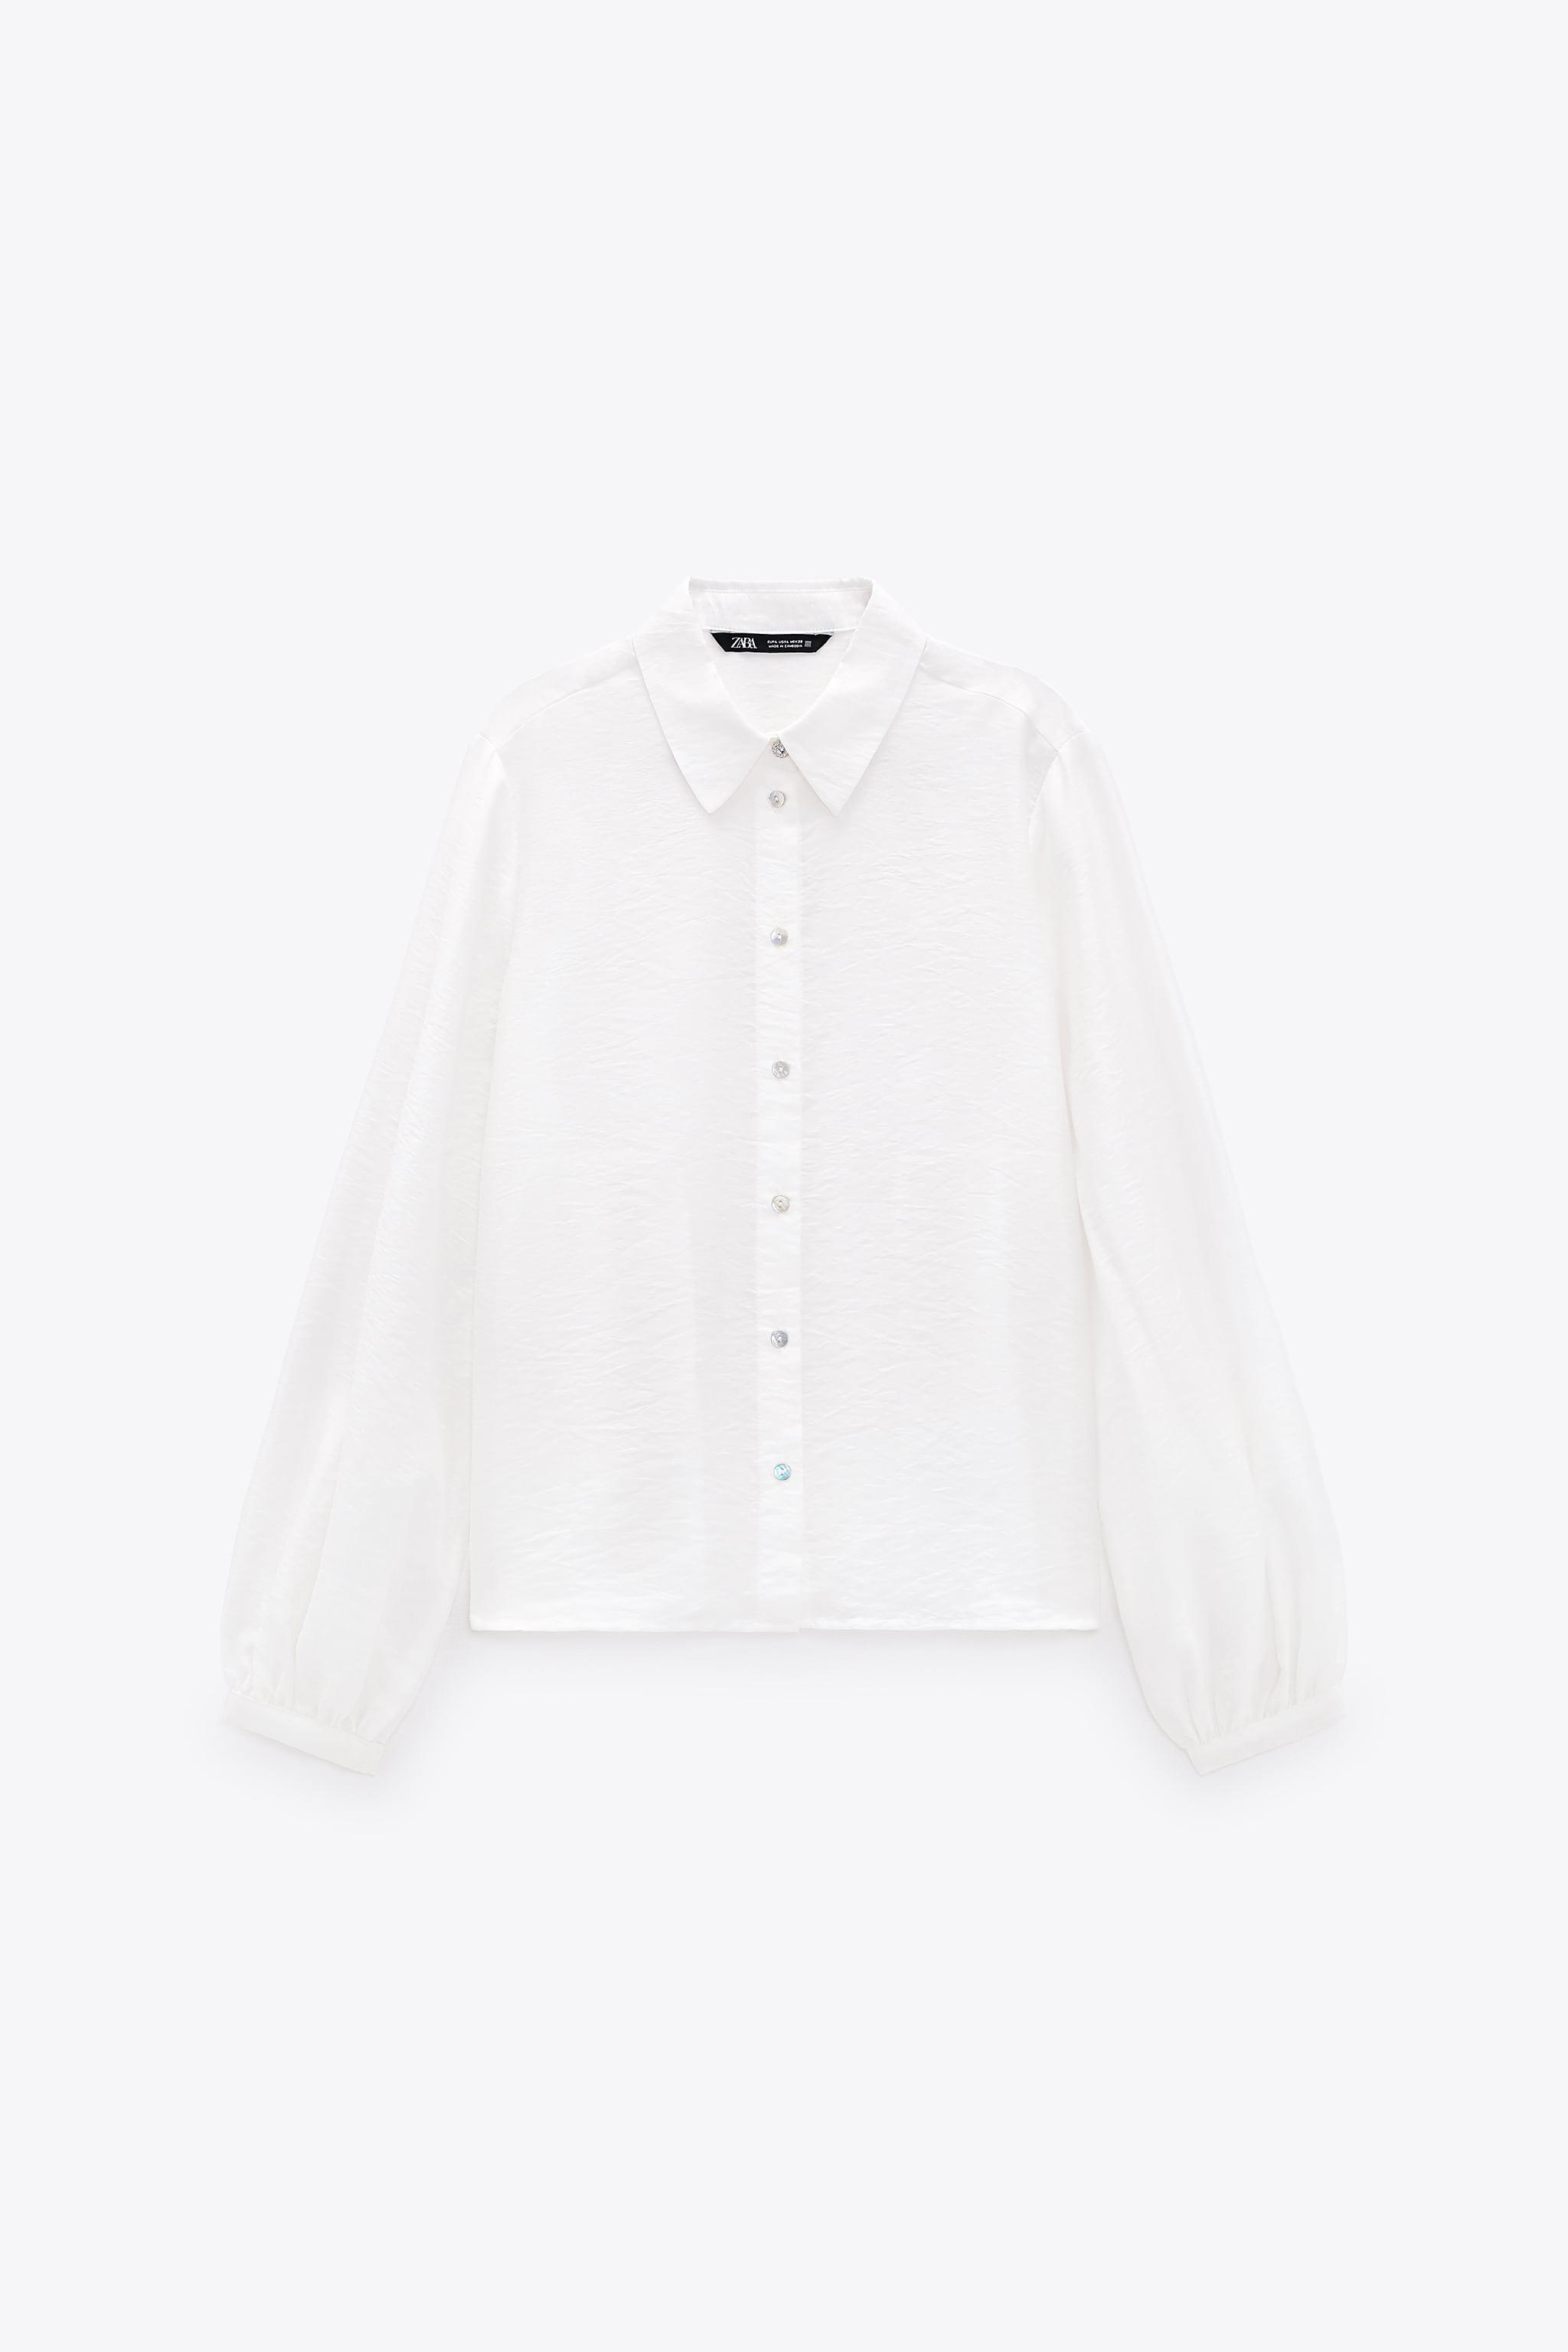 SHIRT WITH JEWEL BUTTONS 6